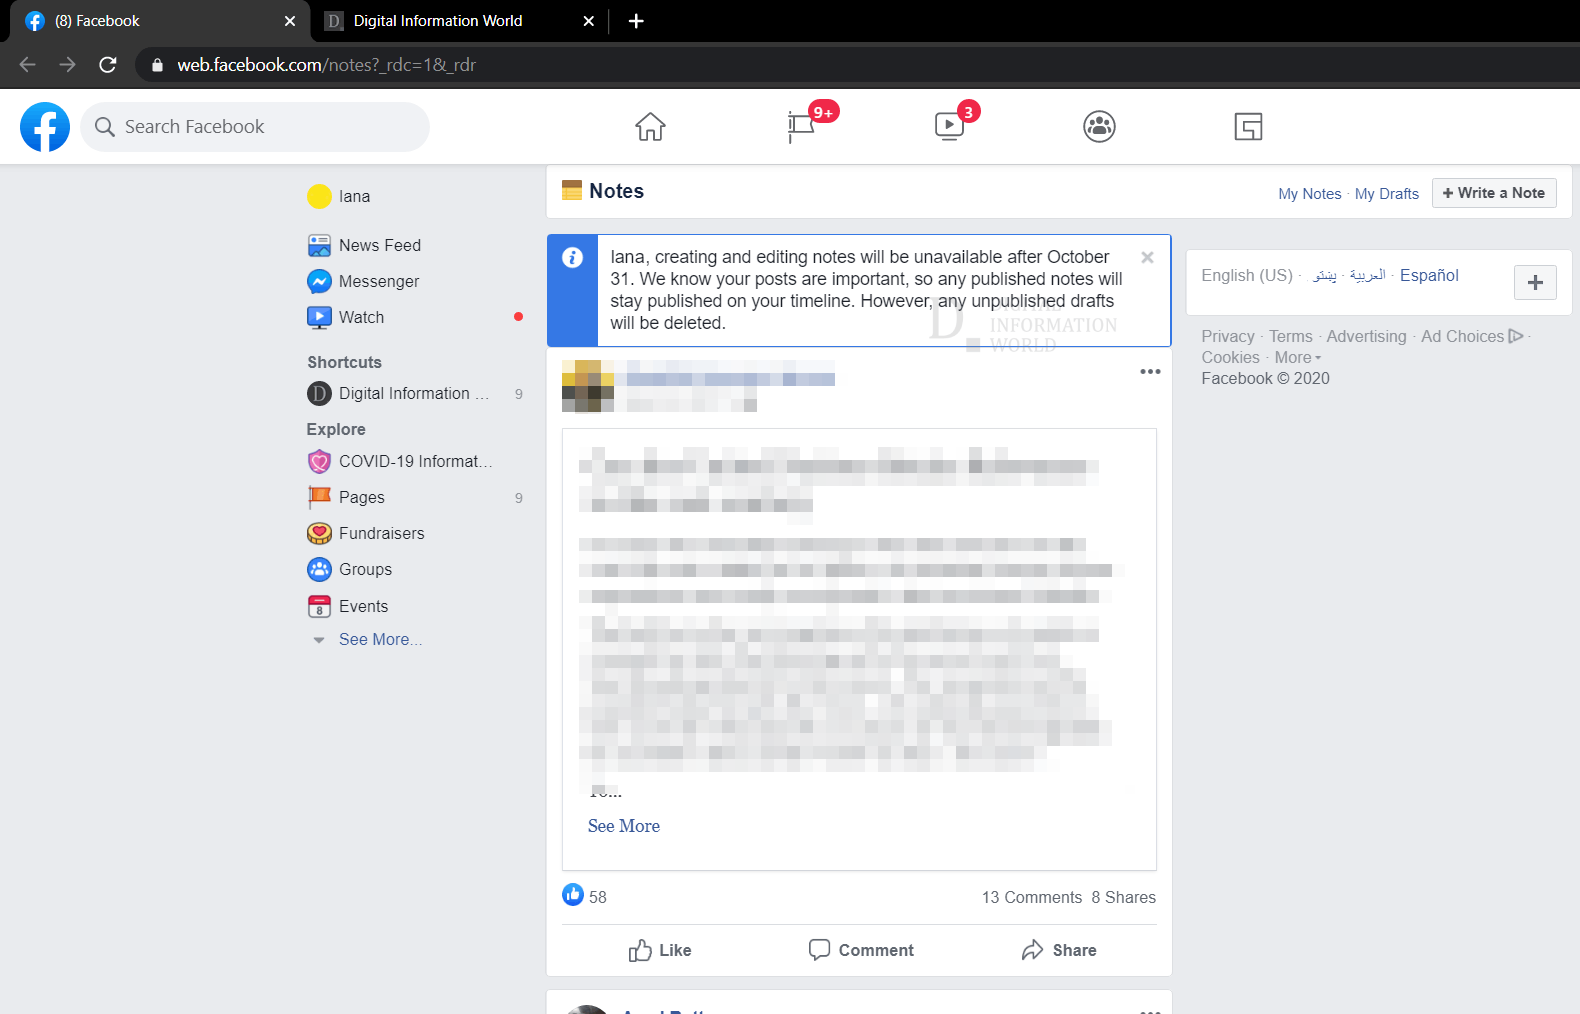 Facebook is sunsetting its Notes feature for all on Oct 31